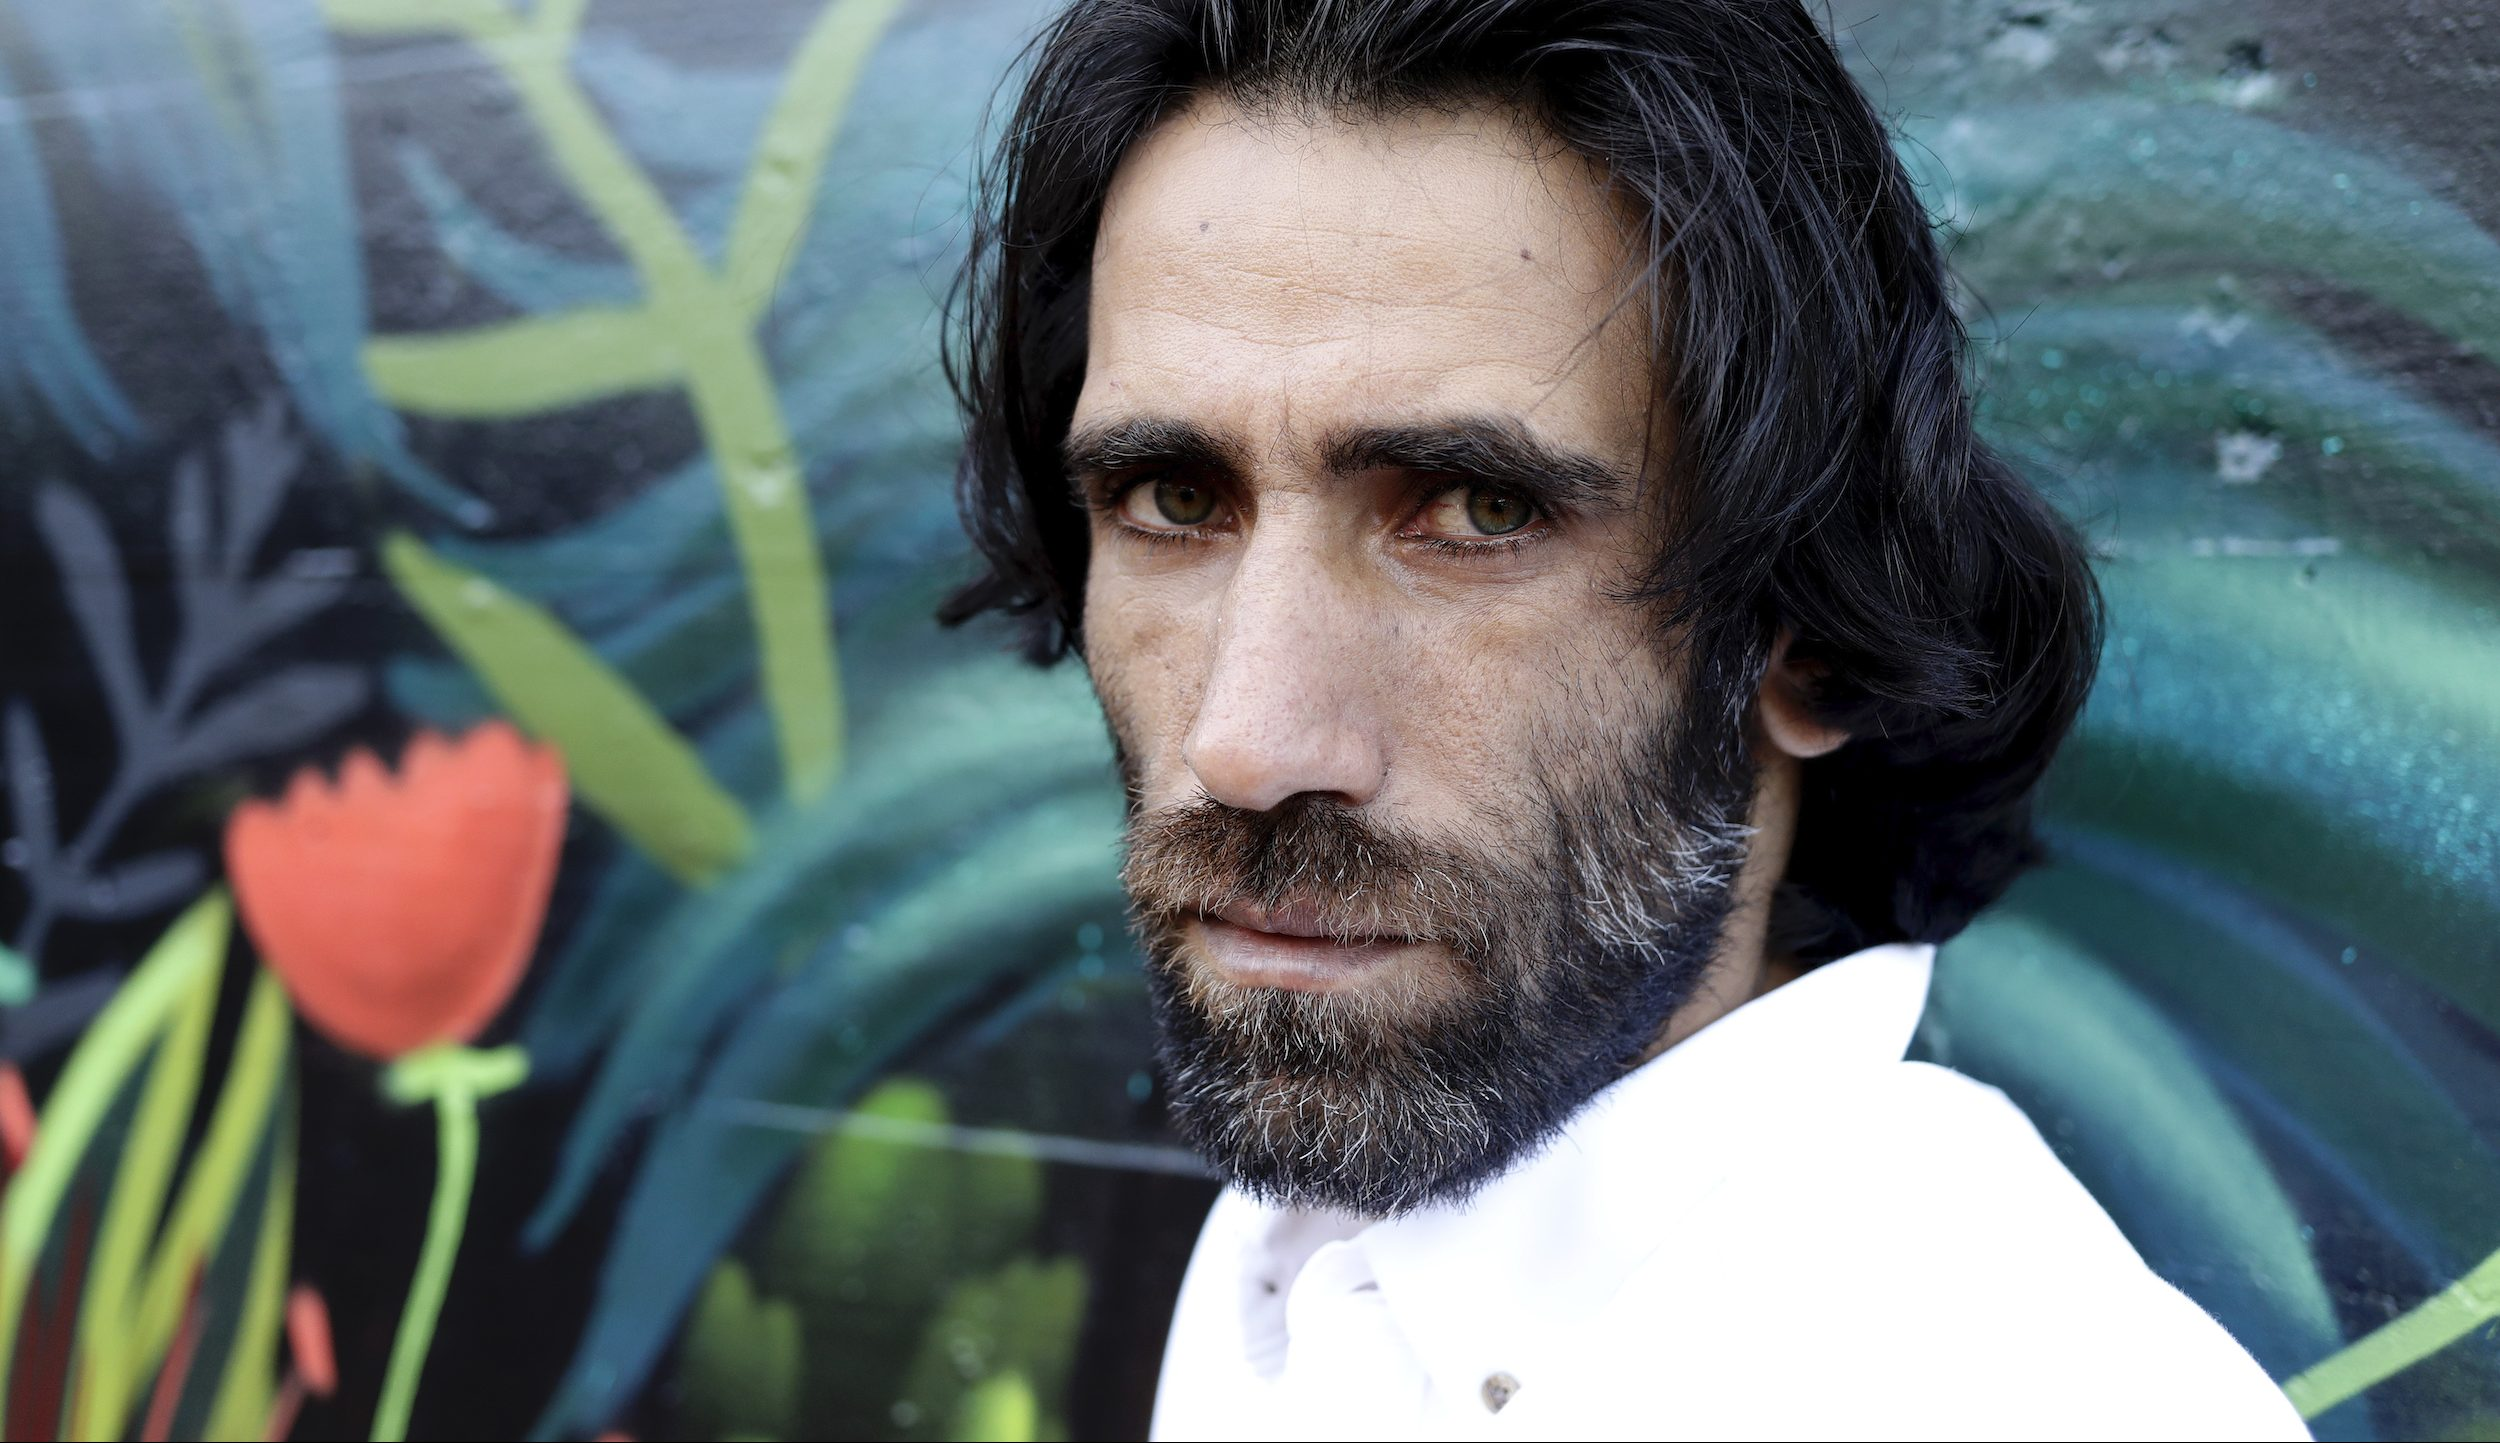 Behrouz Boochani, the Kurdish film-maker, writer and refugee who has documented life inside the Australian detention centre on Manus Island, poses for a portrait in Christchurch, New Zealand on Nov. 19, 2019.